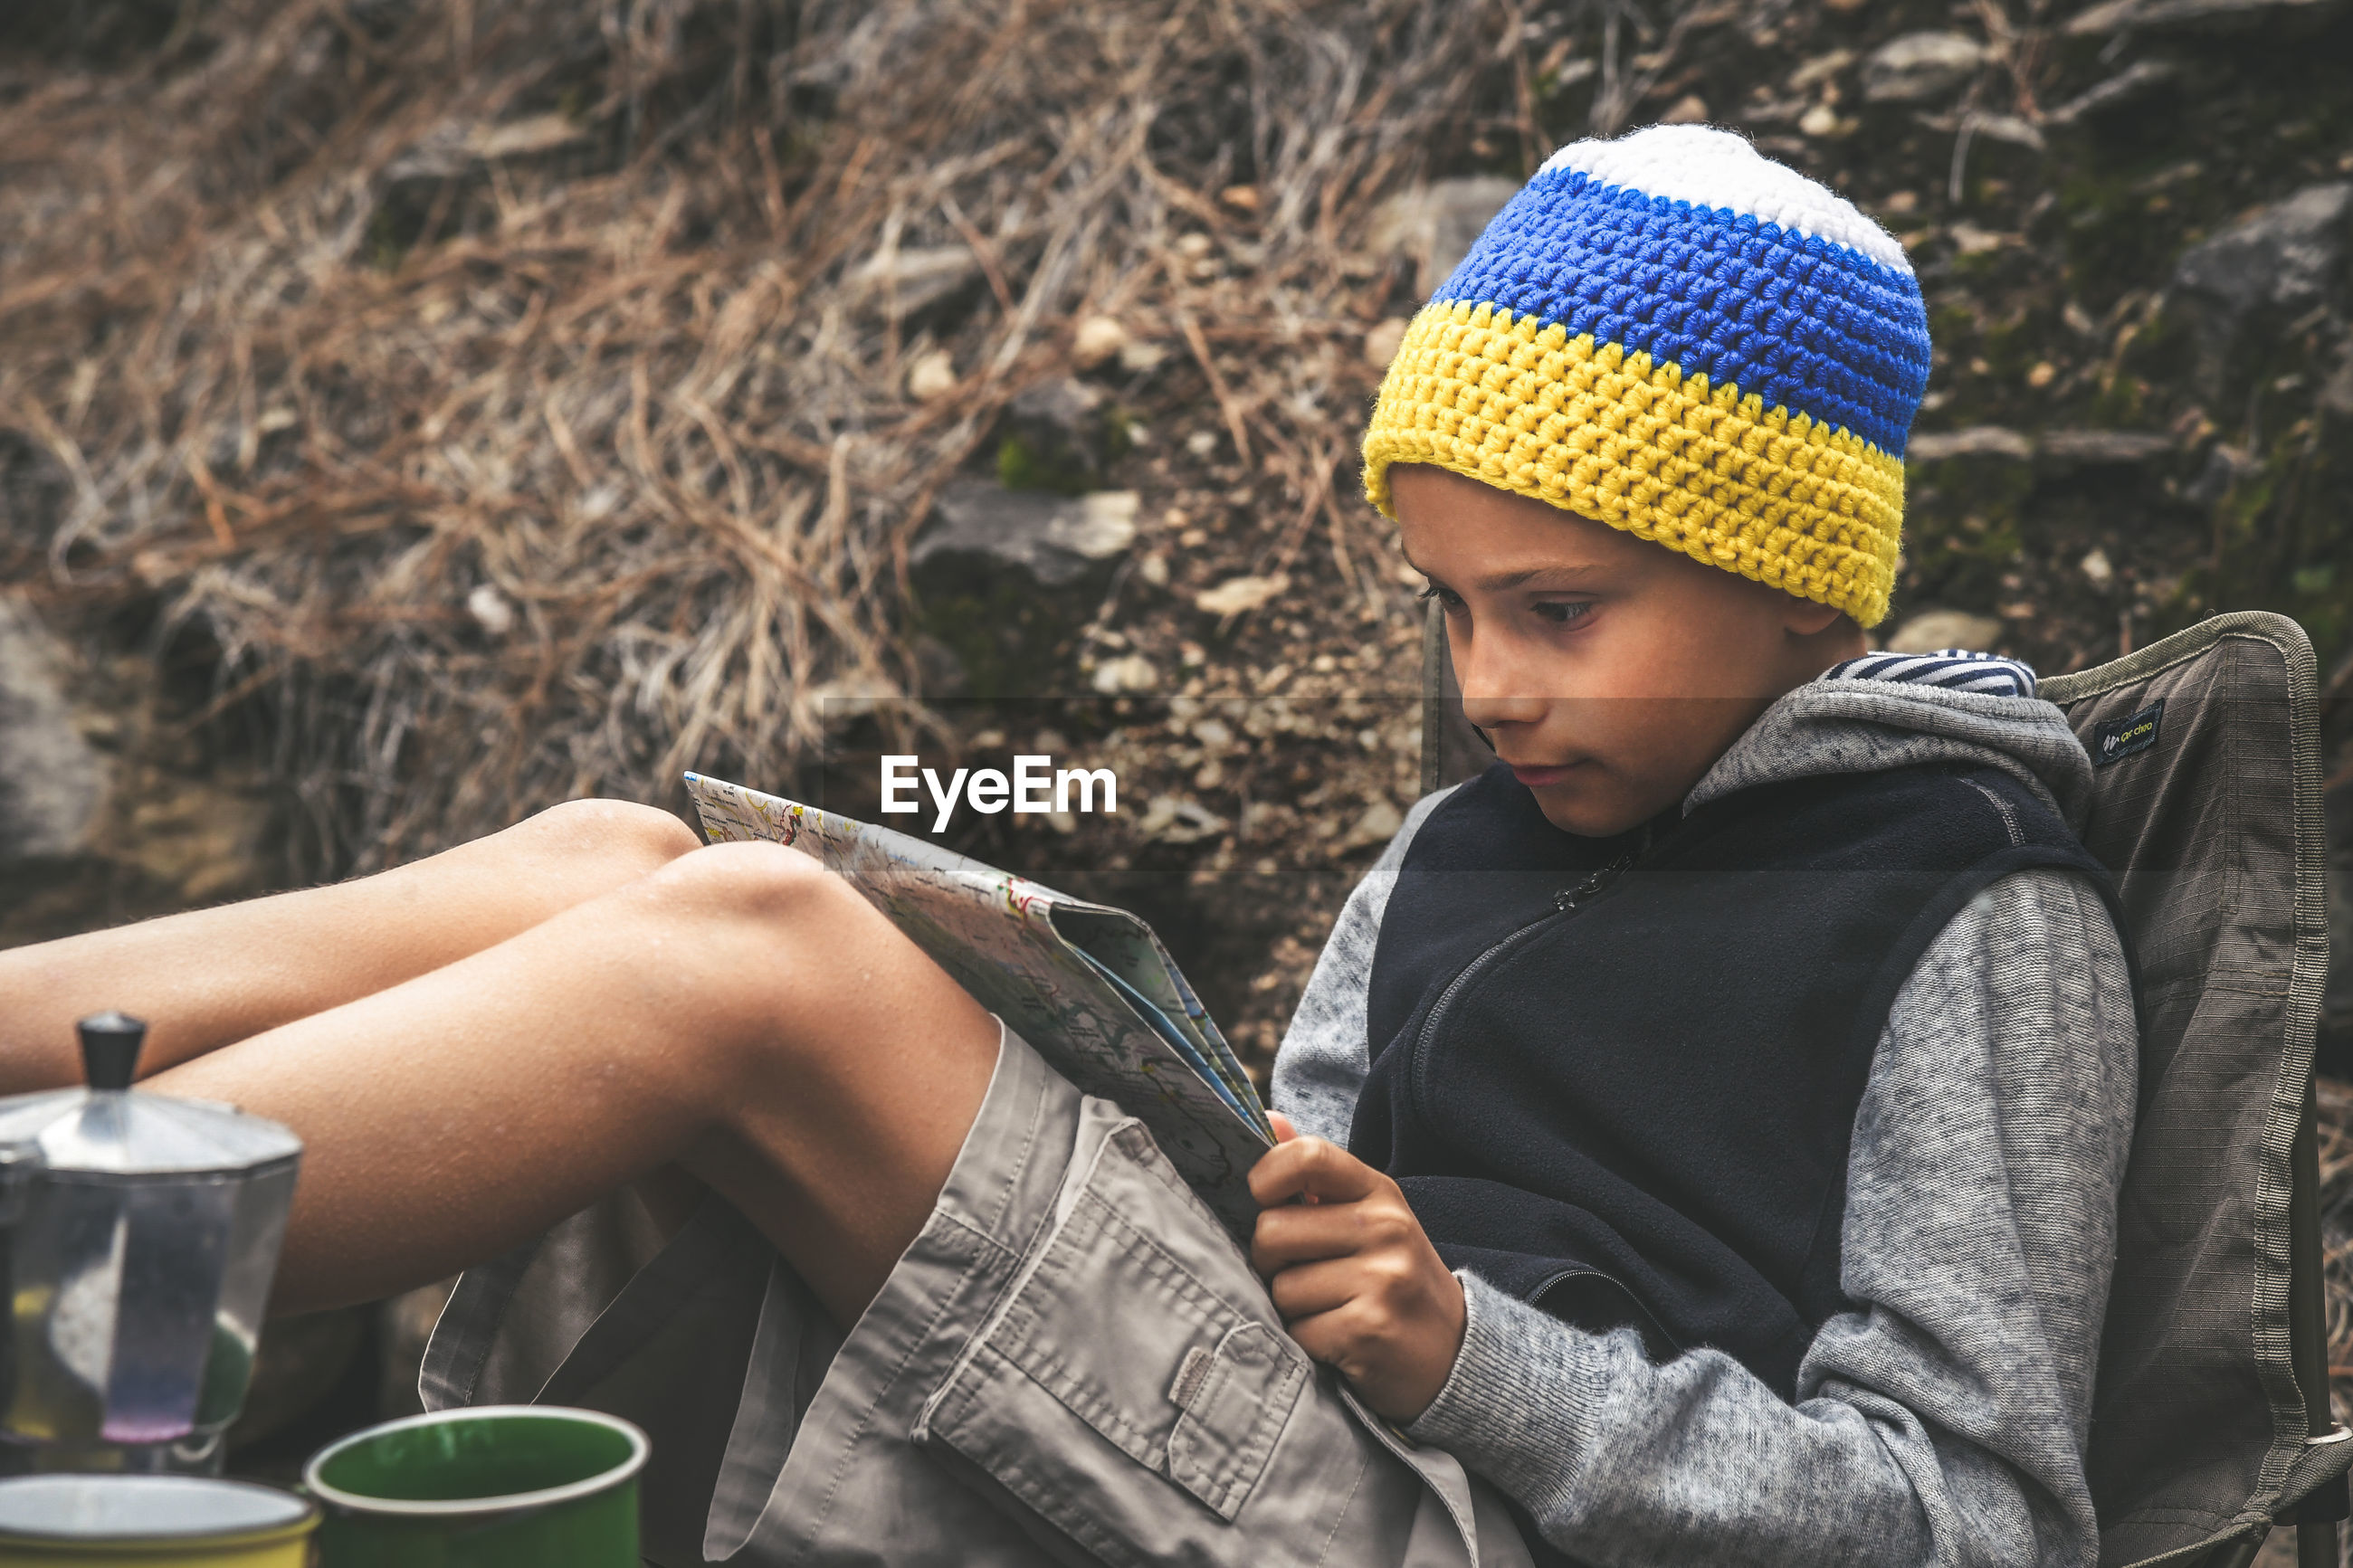 Boy reading map while relaxing on chair at forest